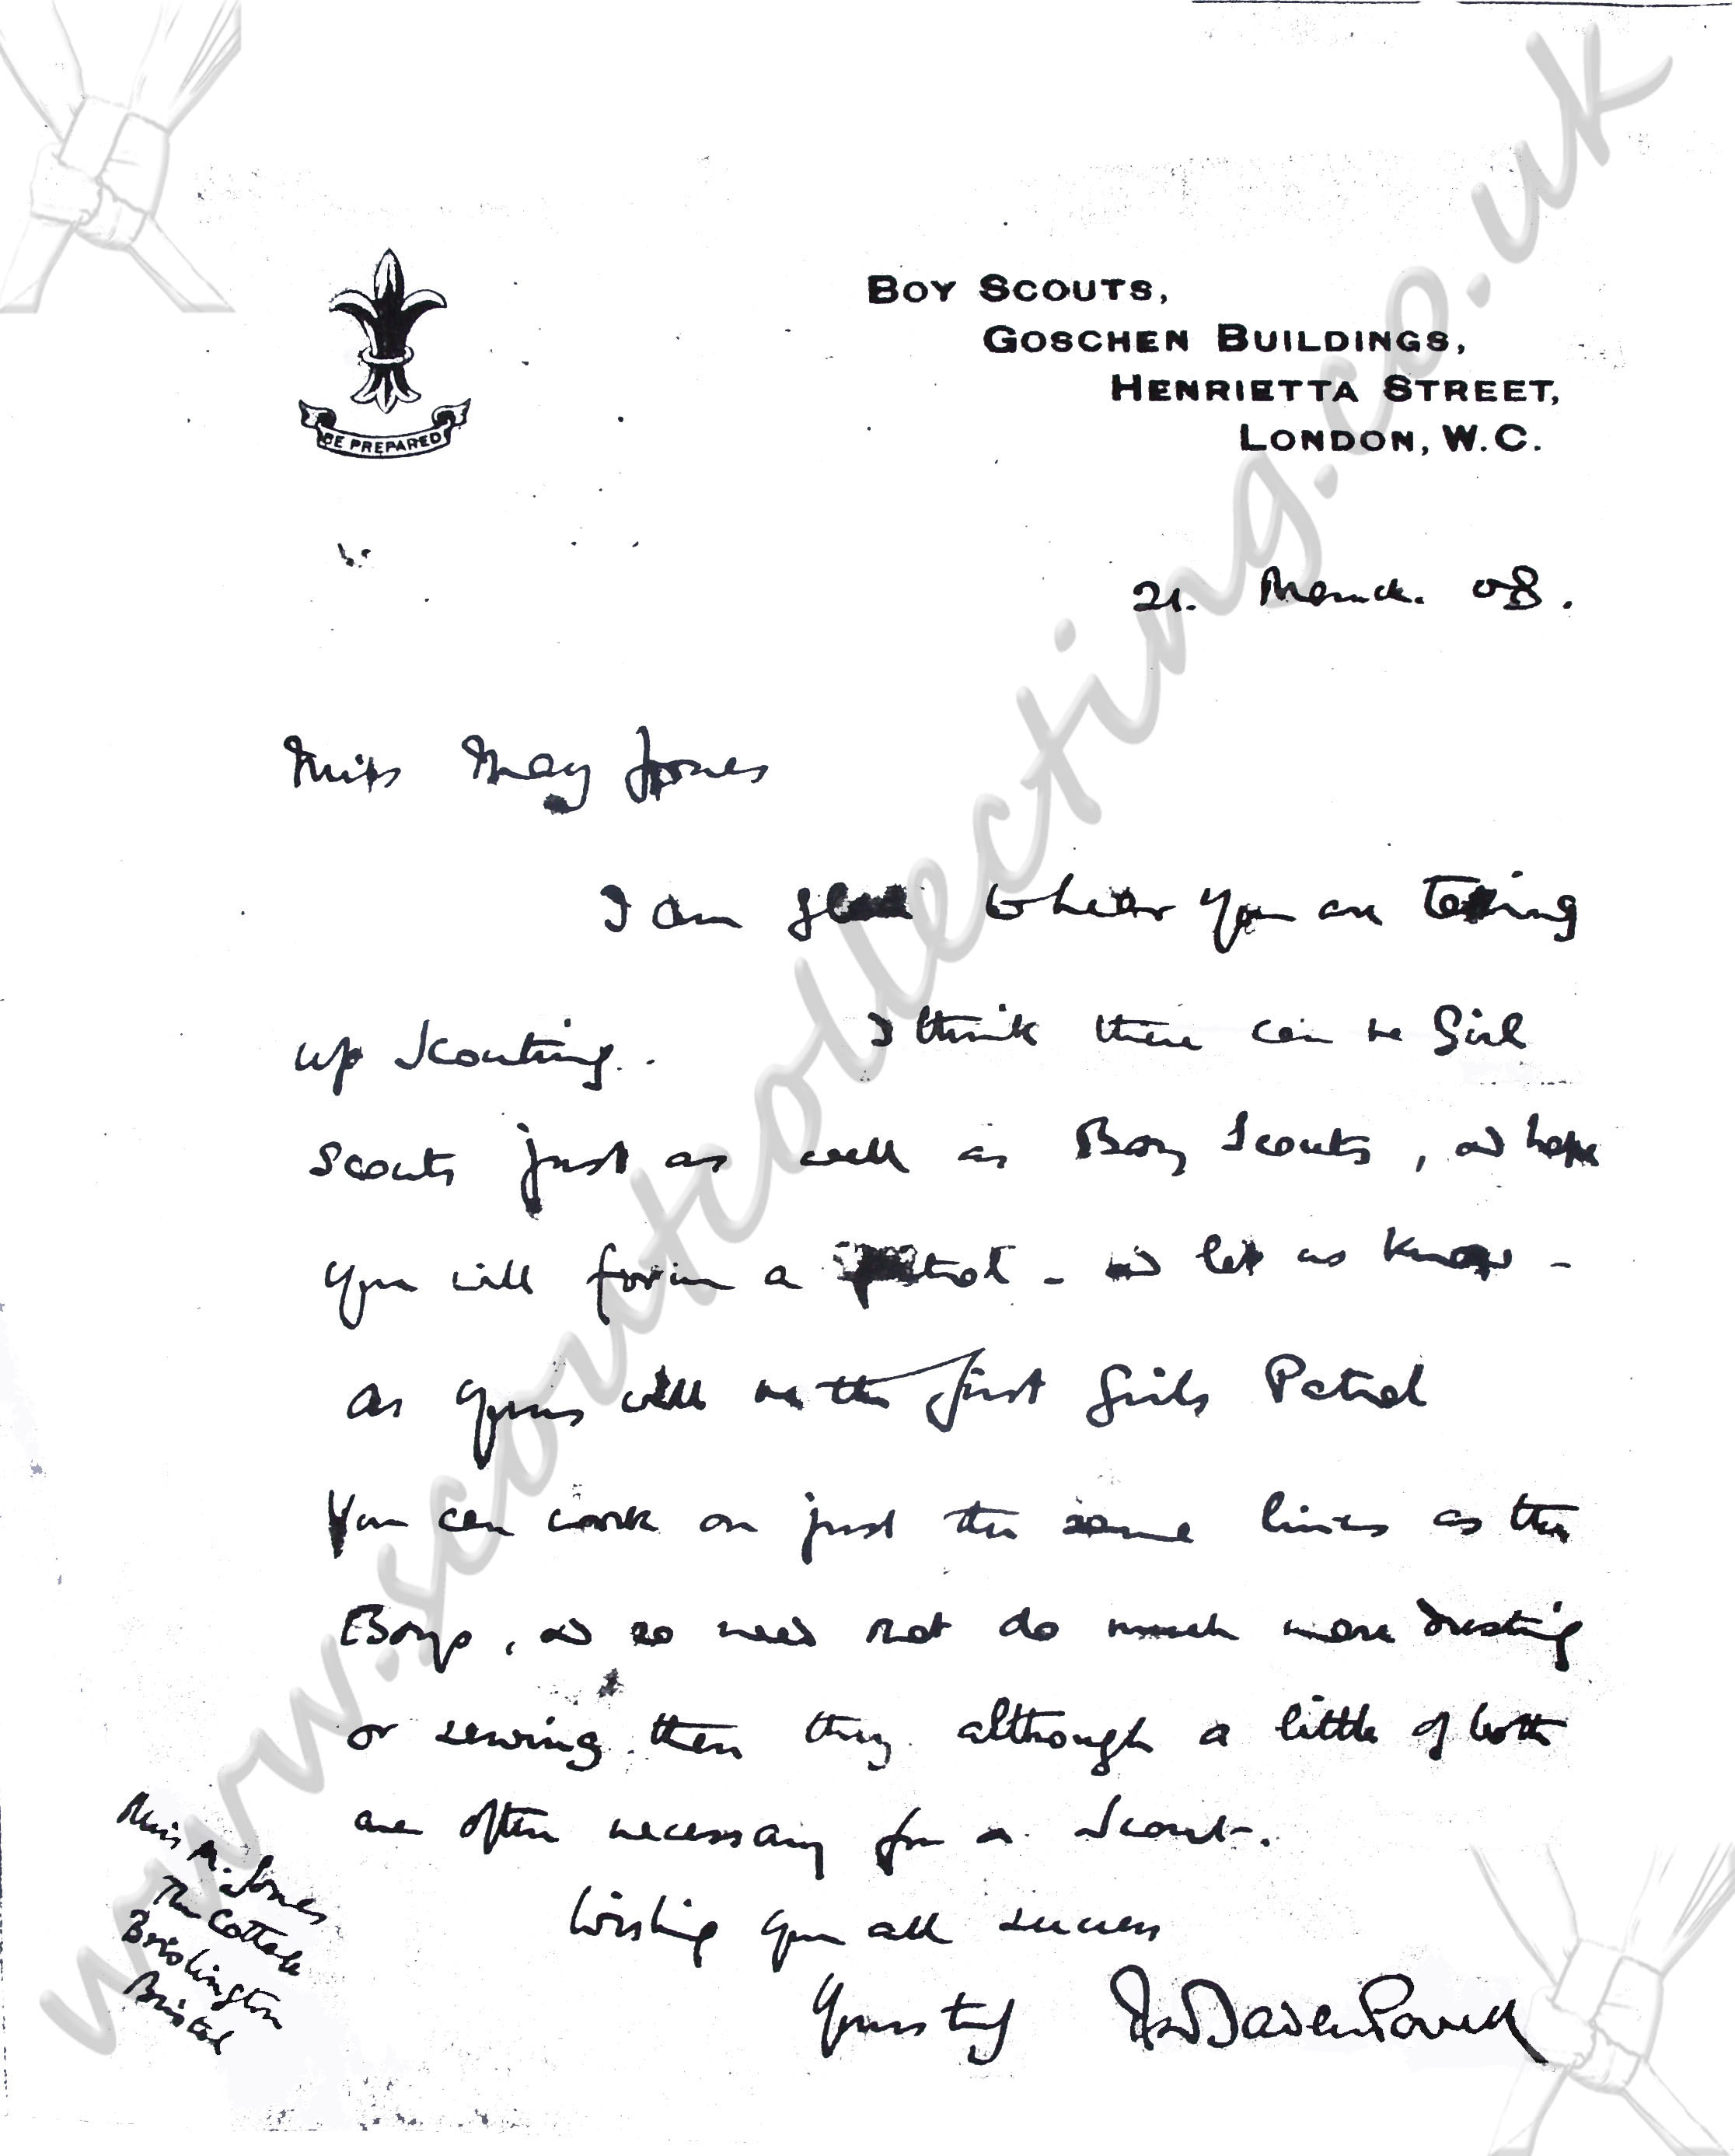 baden_powell_letter_watermarked.jpg